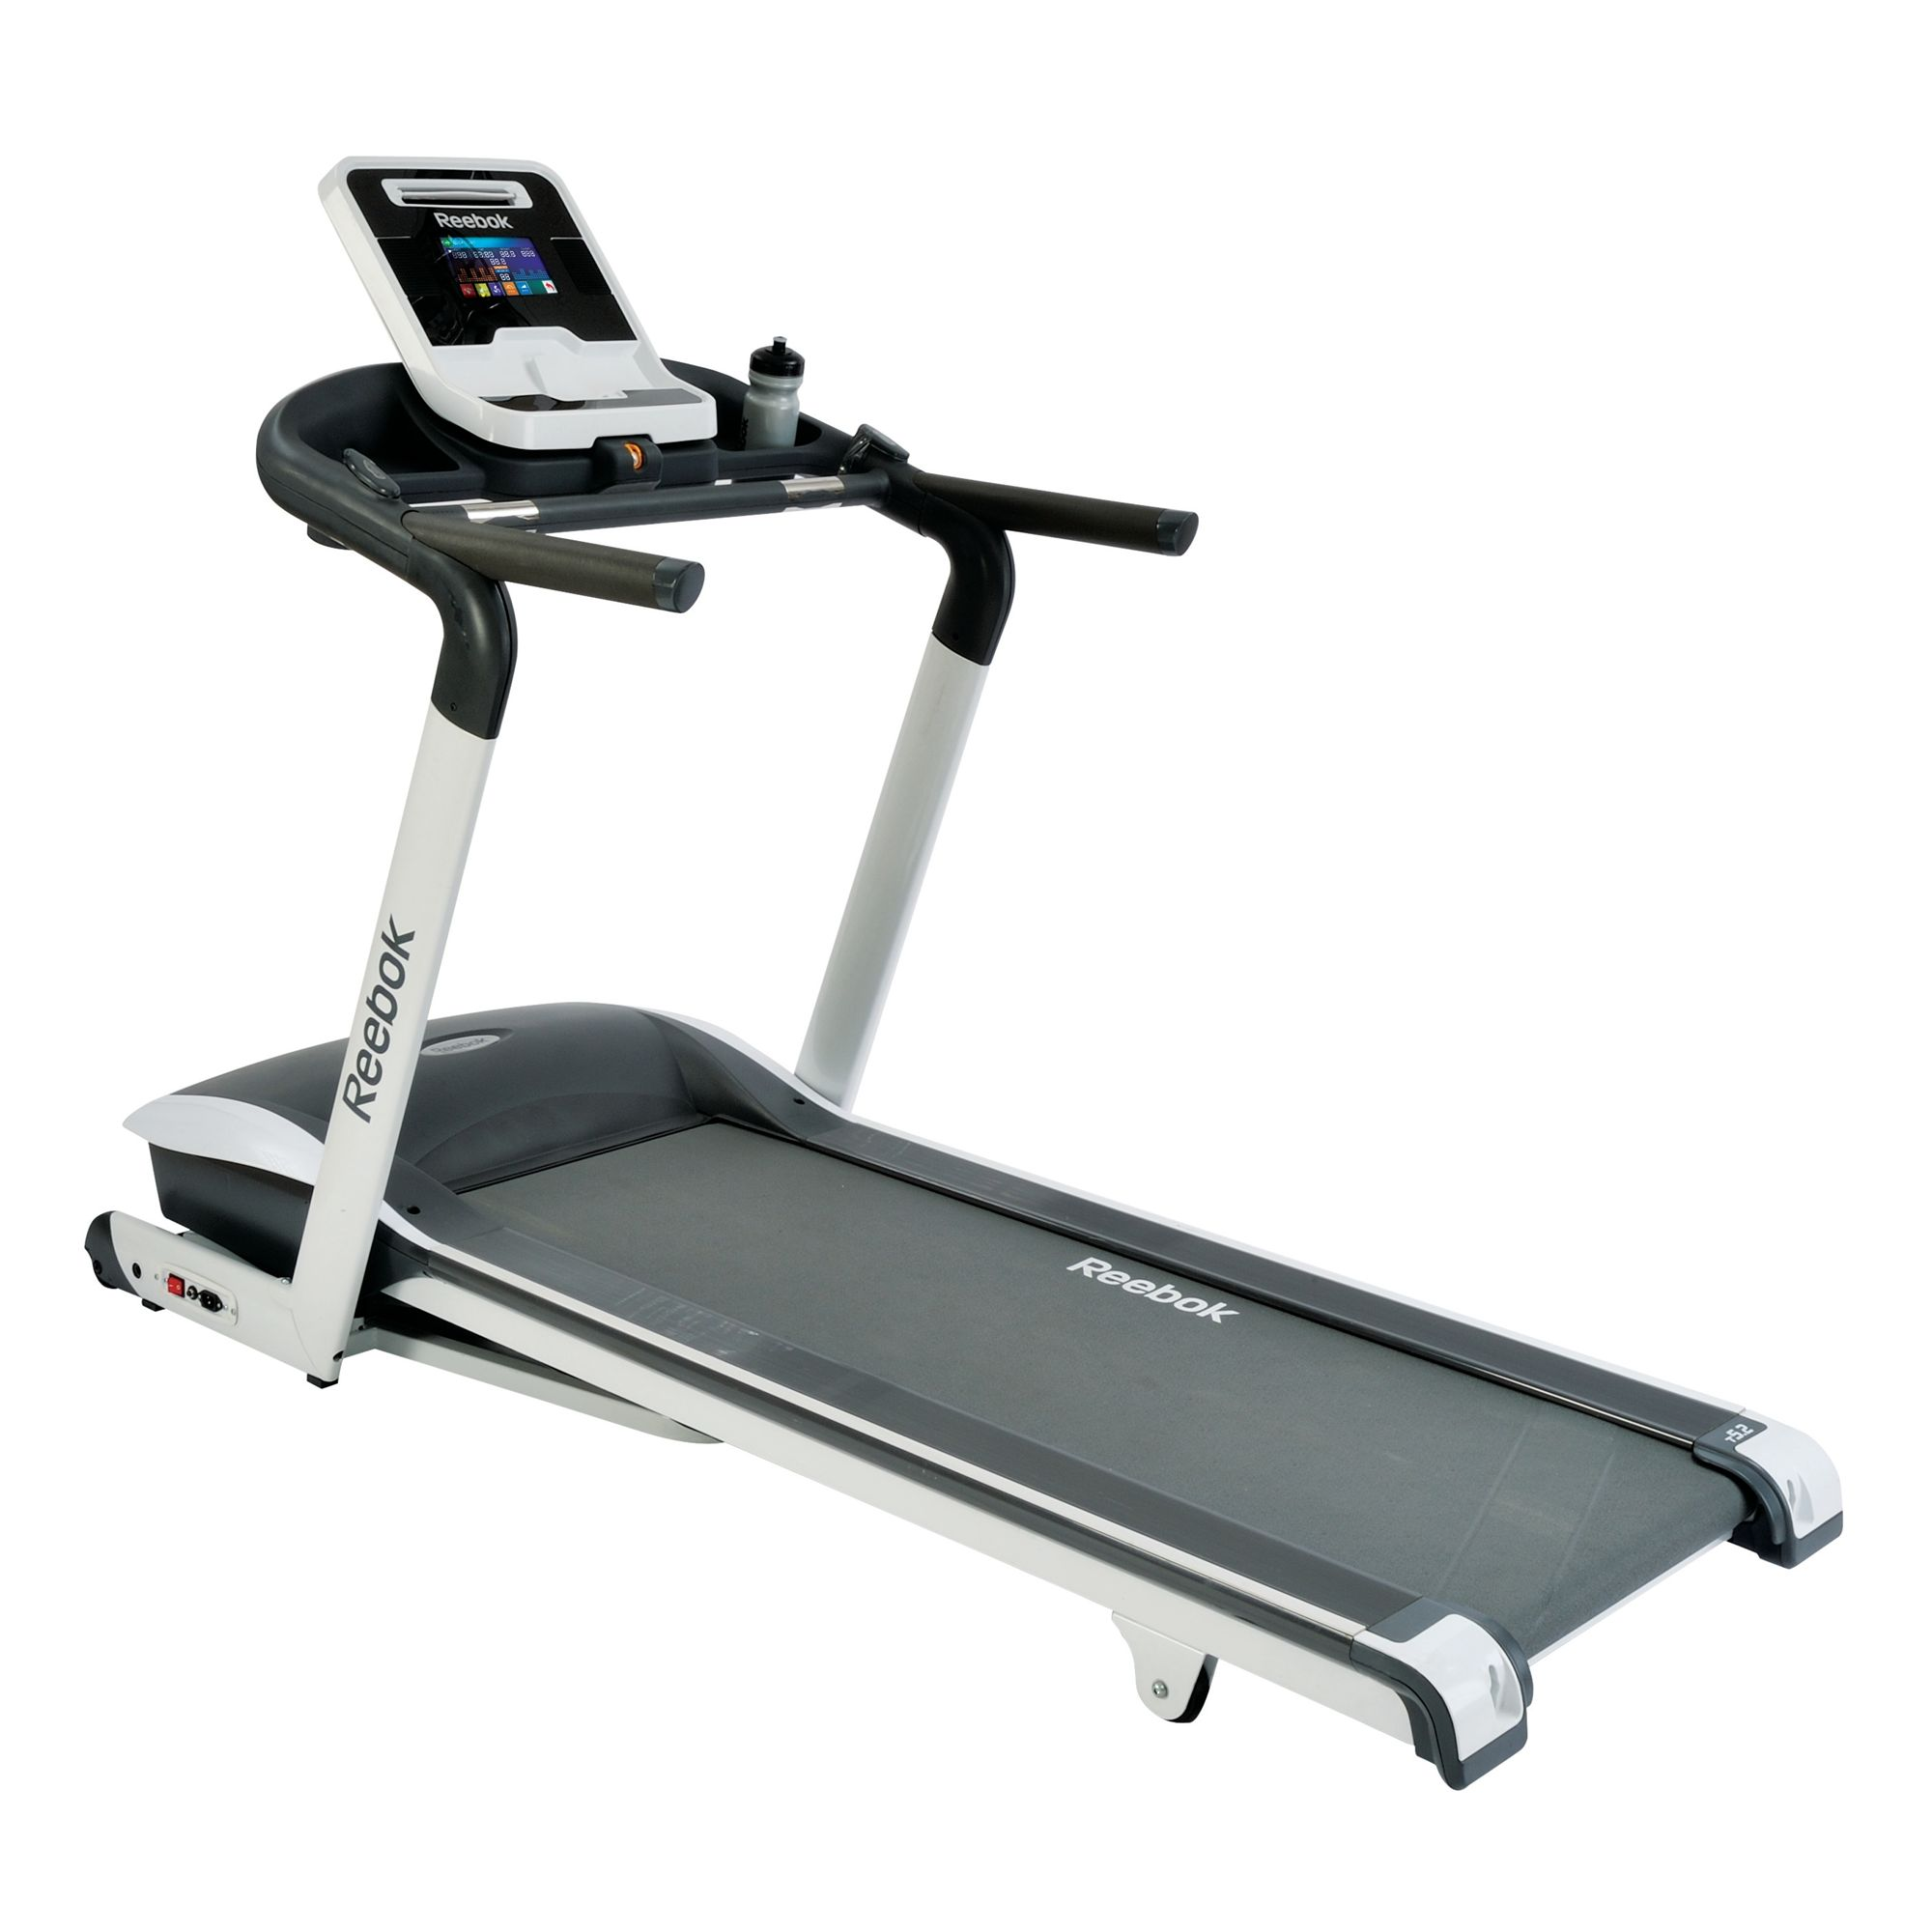 Reebok T5.2 Folding Treadmill Review